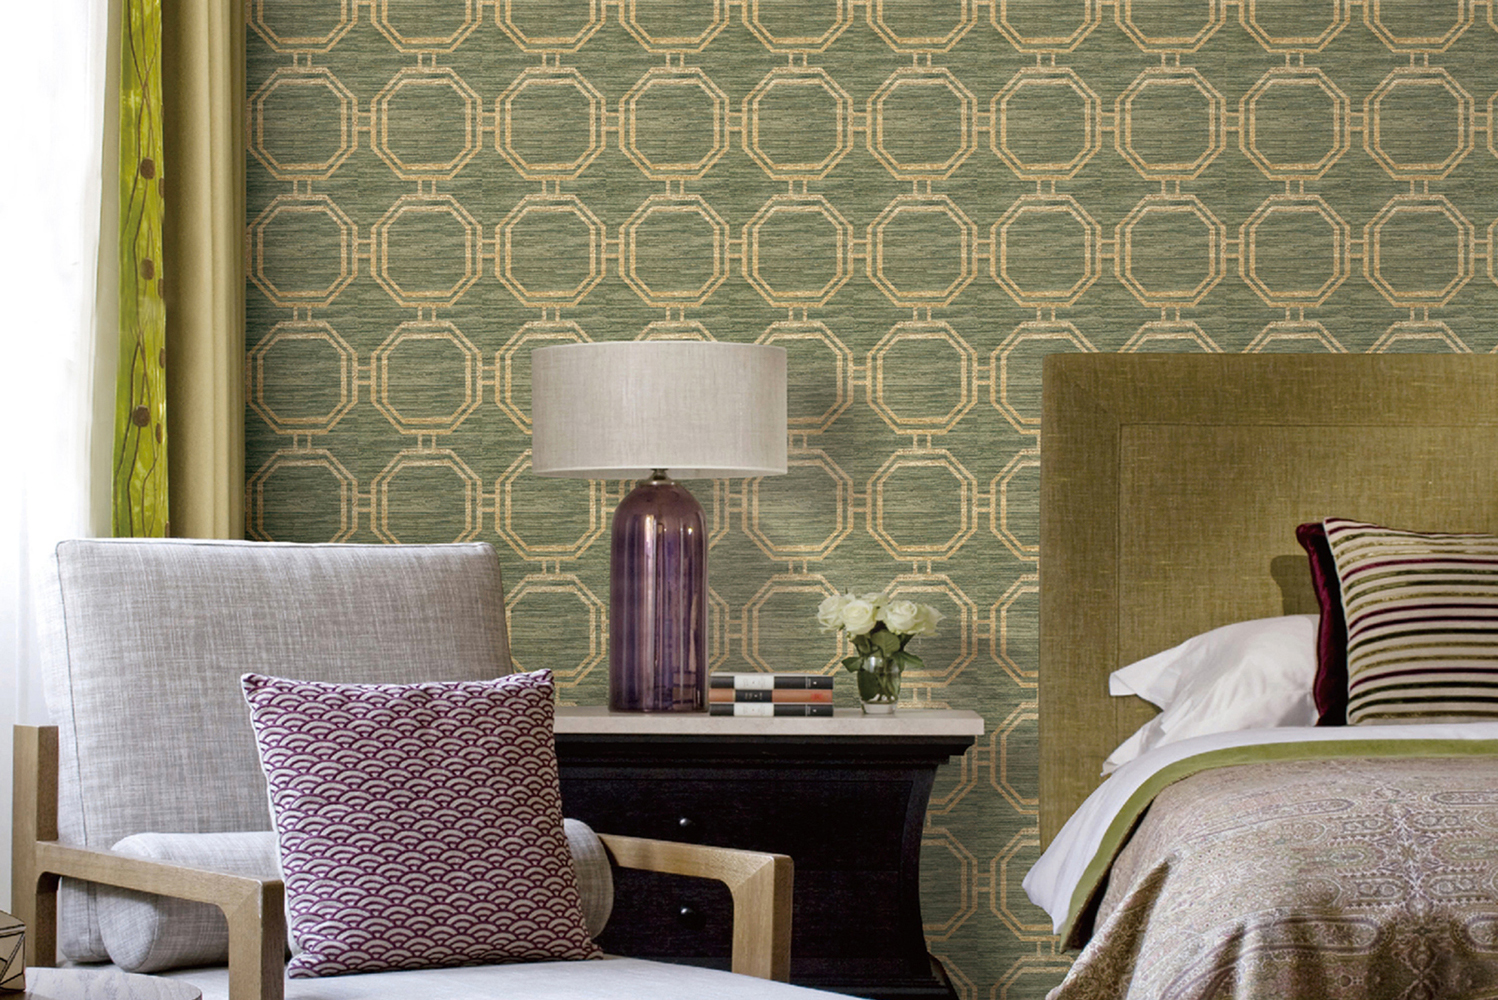 DuPont Electronics & Imaging (DuPont) announced the Tedlar wallcoverings, certified for low chemical emissions from volatile organic compounds (VOCs).